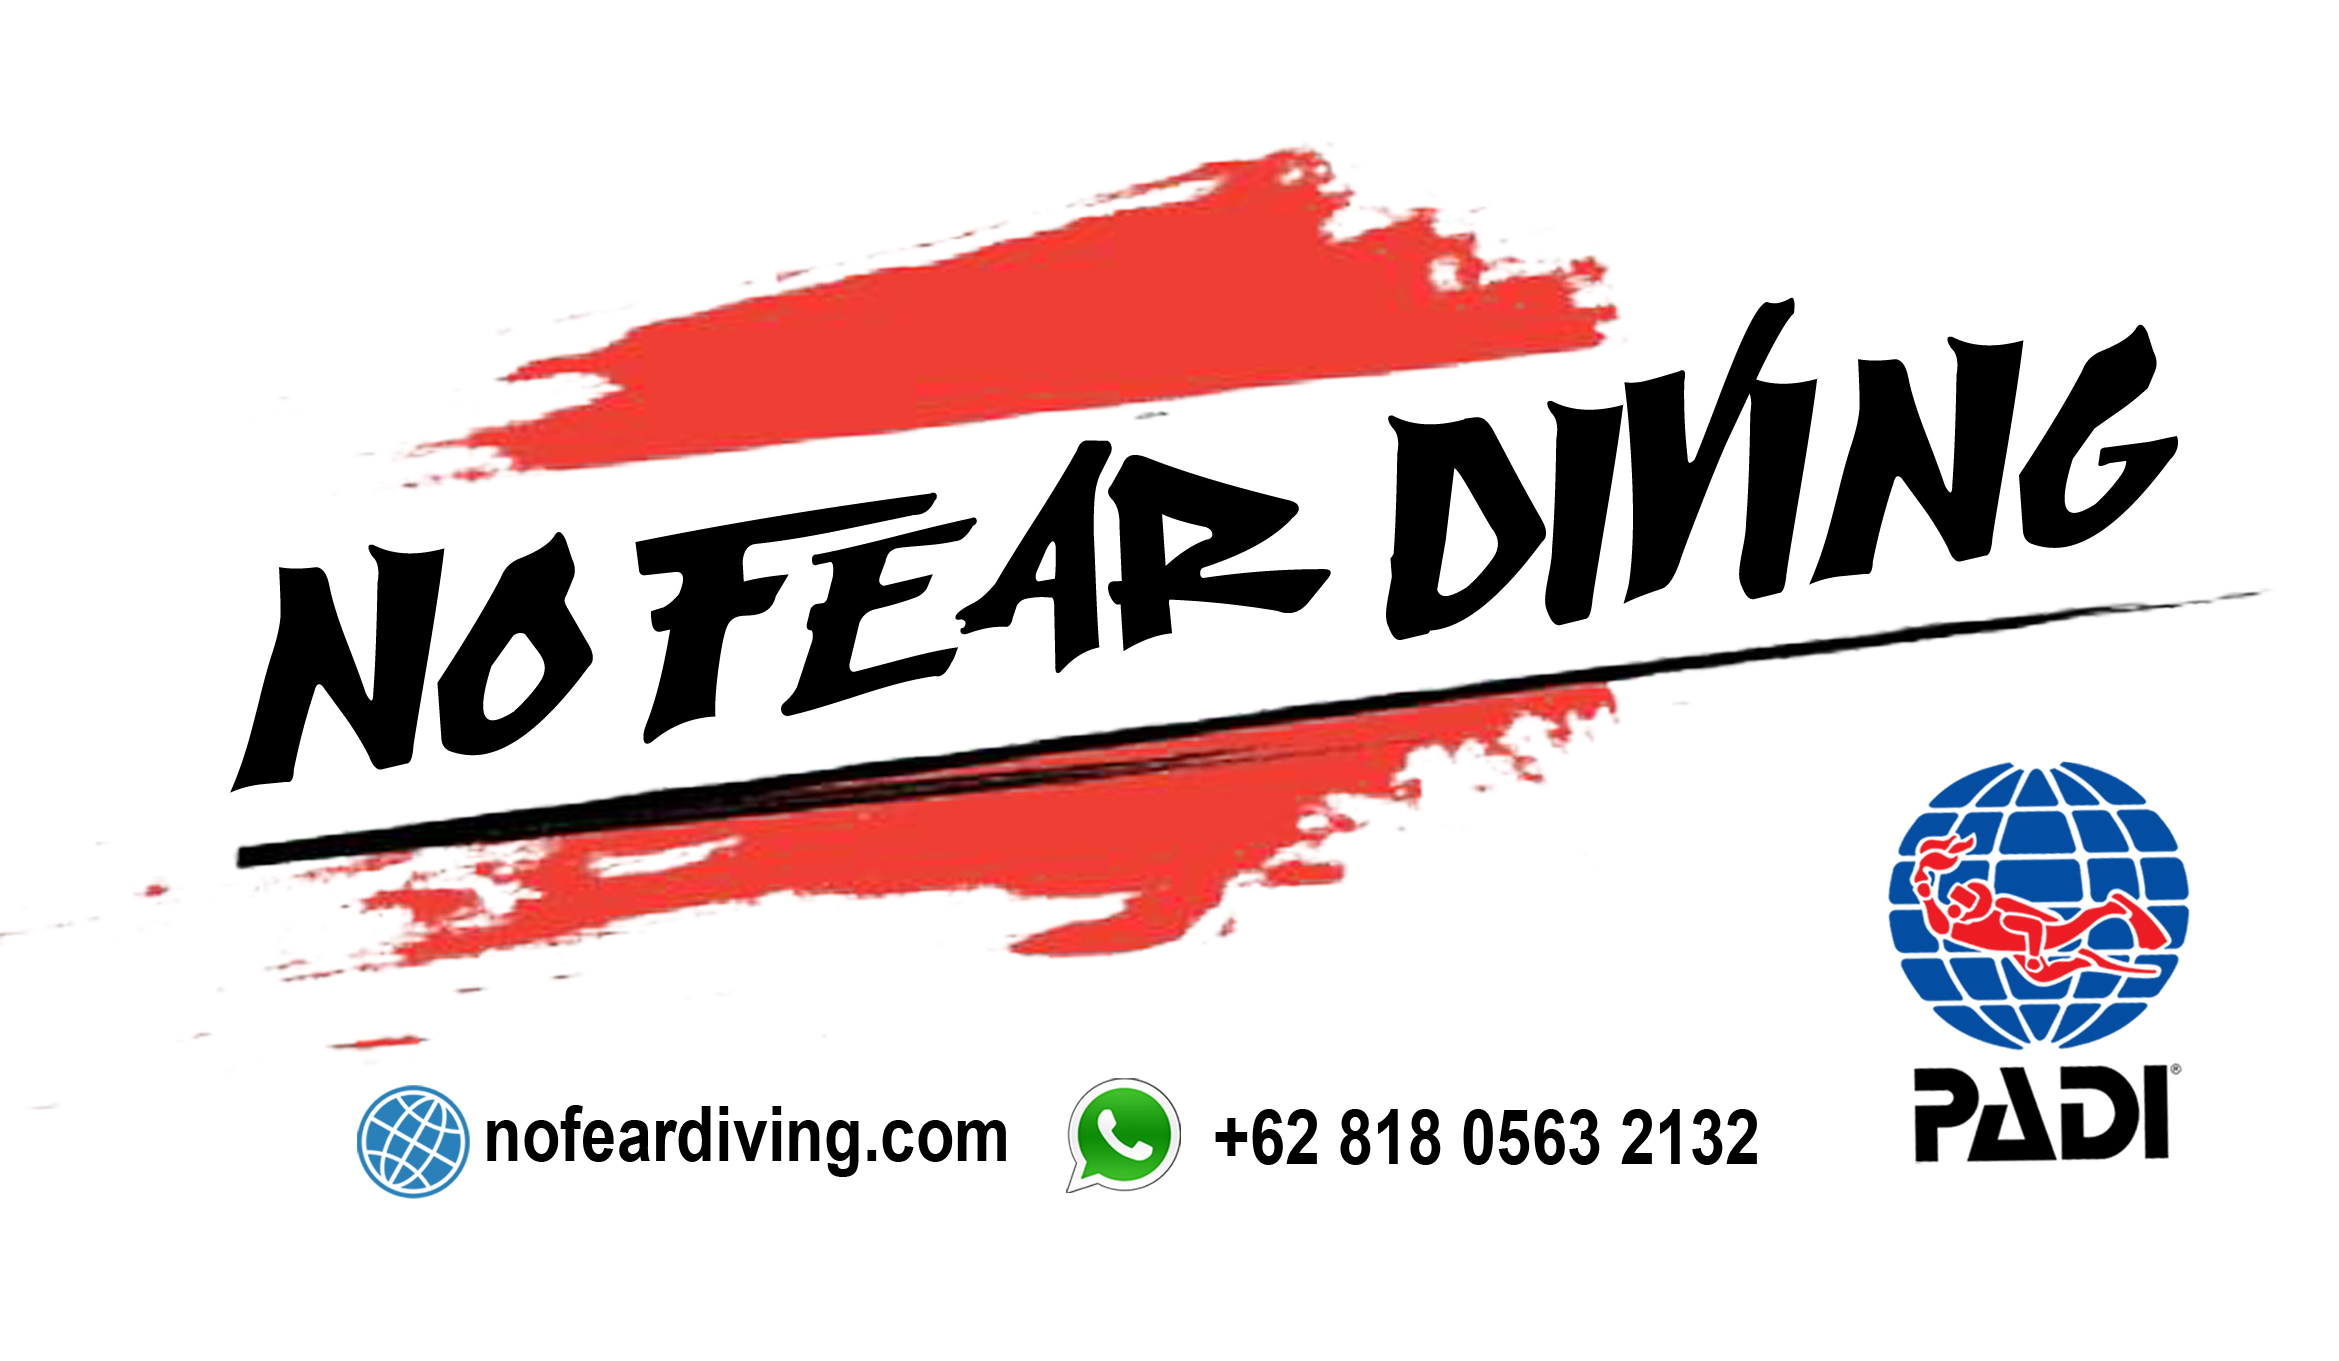 Our Story... Who we are & what we do..  ENGLISH / GERMAN   PADI-No Fear Diving a scuba dive center / school that is located in Amed, Bali, Indonesia. The school is lead by the German State Approved Ergo- Therapist Oliver Radosav.  No Fear Diving customizes  your scuba diving experience.  We are a specialized dive center for beginner & for people with concerns and fears in context with scuba diving & water. No Fear Diving  puts you, as a diver, with all your individual & personal wishes, handicaps, needs and goals at the center of attention and professional supervision through a PADI Instructor.  Personality, individuality and customer-centricity are the attributes of the No Fear Diving. No Fear Diving is your individual scuba dive course!  A safe way for clients to test themselves in a secure and supervised atmosphere.  We create space to speak about problems, dispel misgivings, rebut and eliminate stress and as a result, to reduce discomfort, anxiousness. Come & learn scuba diving with us in Amed Bali.!!! Contact us Souldives@gmail.com / WA +62 818-0563-2132   GERMAN............................................................................  No Fear Diving ist eine deutsche Tauchschule in Amed, Bali, Indonesien unter der Leitung des Staatlich anerkannten Ergotherapeuten Oliver Radosav. No Fear Diving is eine spezialisiertes Tauchschule für Anfänger,  Kinder & für Menschen mit Ängsten.  Wir gehen detailliert auf Bedenken und Ängsten von Menschen ein. Bei uns stehst Du als Taucher selbst, im Mittelpunkt des Kurses, mit deinen Bedürfnissen, Bedenken, Einschränkungen, Möglichkeiten und Zielen. Unser PADI-No Fear Diving Tauchschule ist klientenzentriert gestaltet und betont somit Deine individuellen Bedürfnisse als Taucher und Mensch.  Persönlichkeit, Individualität und Kunden- Zentriertheit sind die Attribute von No Fear Diving.  PADI No Fear Diving  stellt eine gute und sichere Möglichkeit für Dich als Tauchkunden dar, Dich selbst in einer professionell & supervisionierten Atmosphäre auszuprobieren. Erklärtes Ziel ist es, sich Unterwasser wohlzufühlen... Lerne Tauchen mit uns in Amed Bali Indonesia. !!! Kontakt:  Souldives@gmail.com / WA +62 818-0563-2132